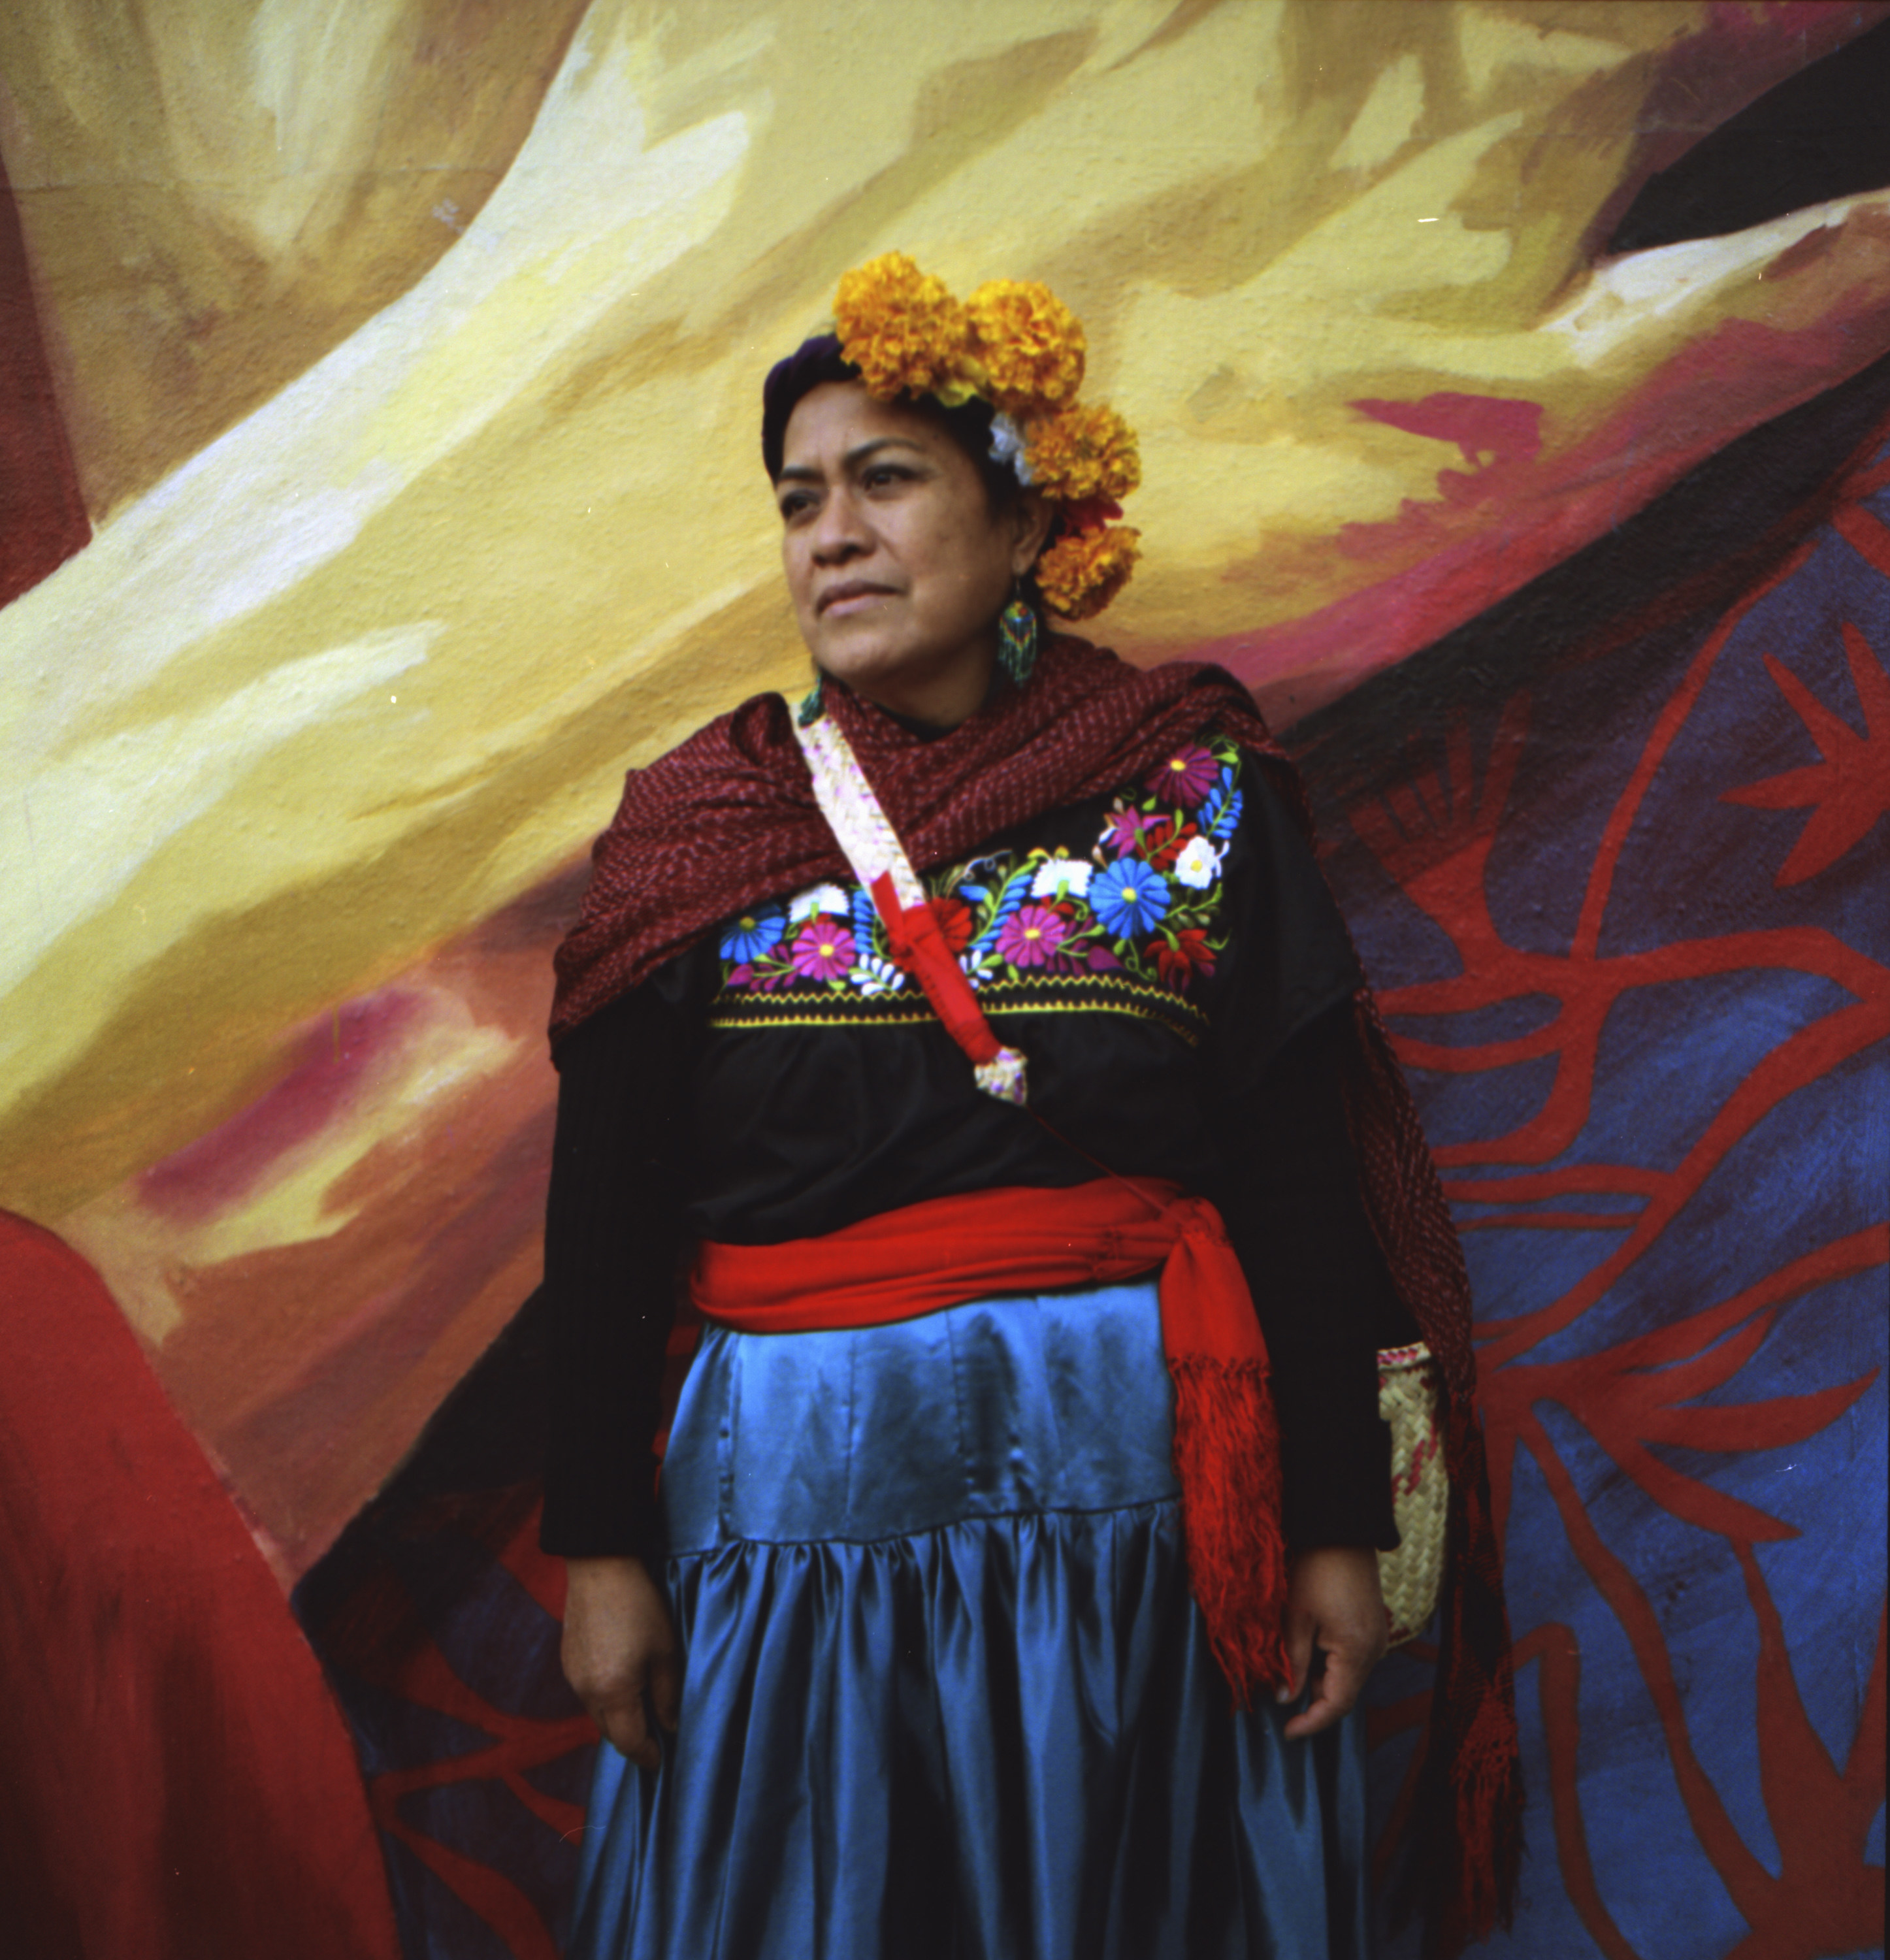 An indigenous Mexican woman with a flower crown standing in front of a mural